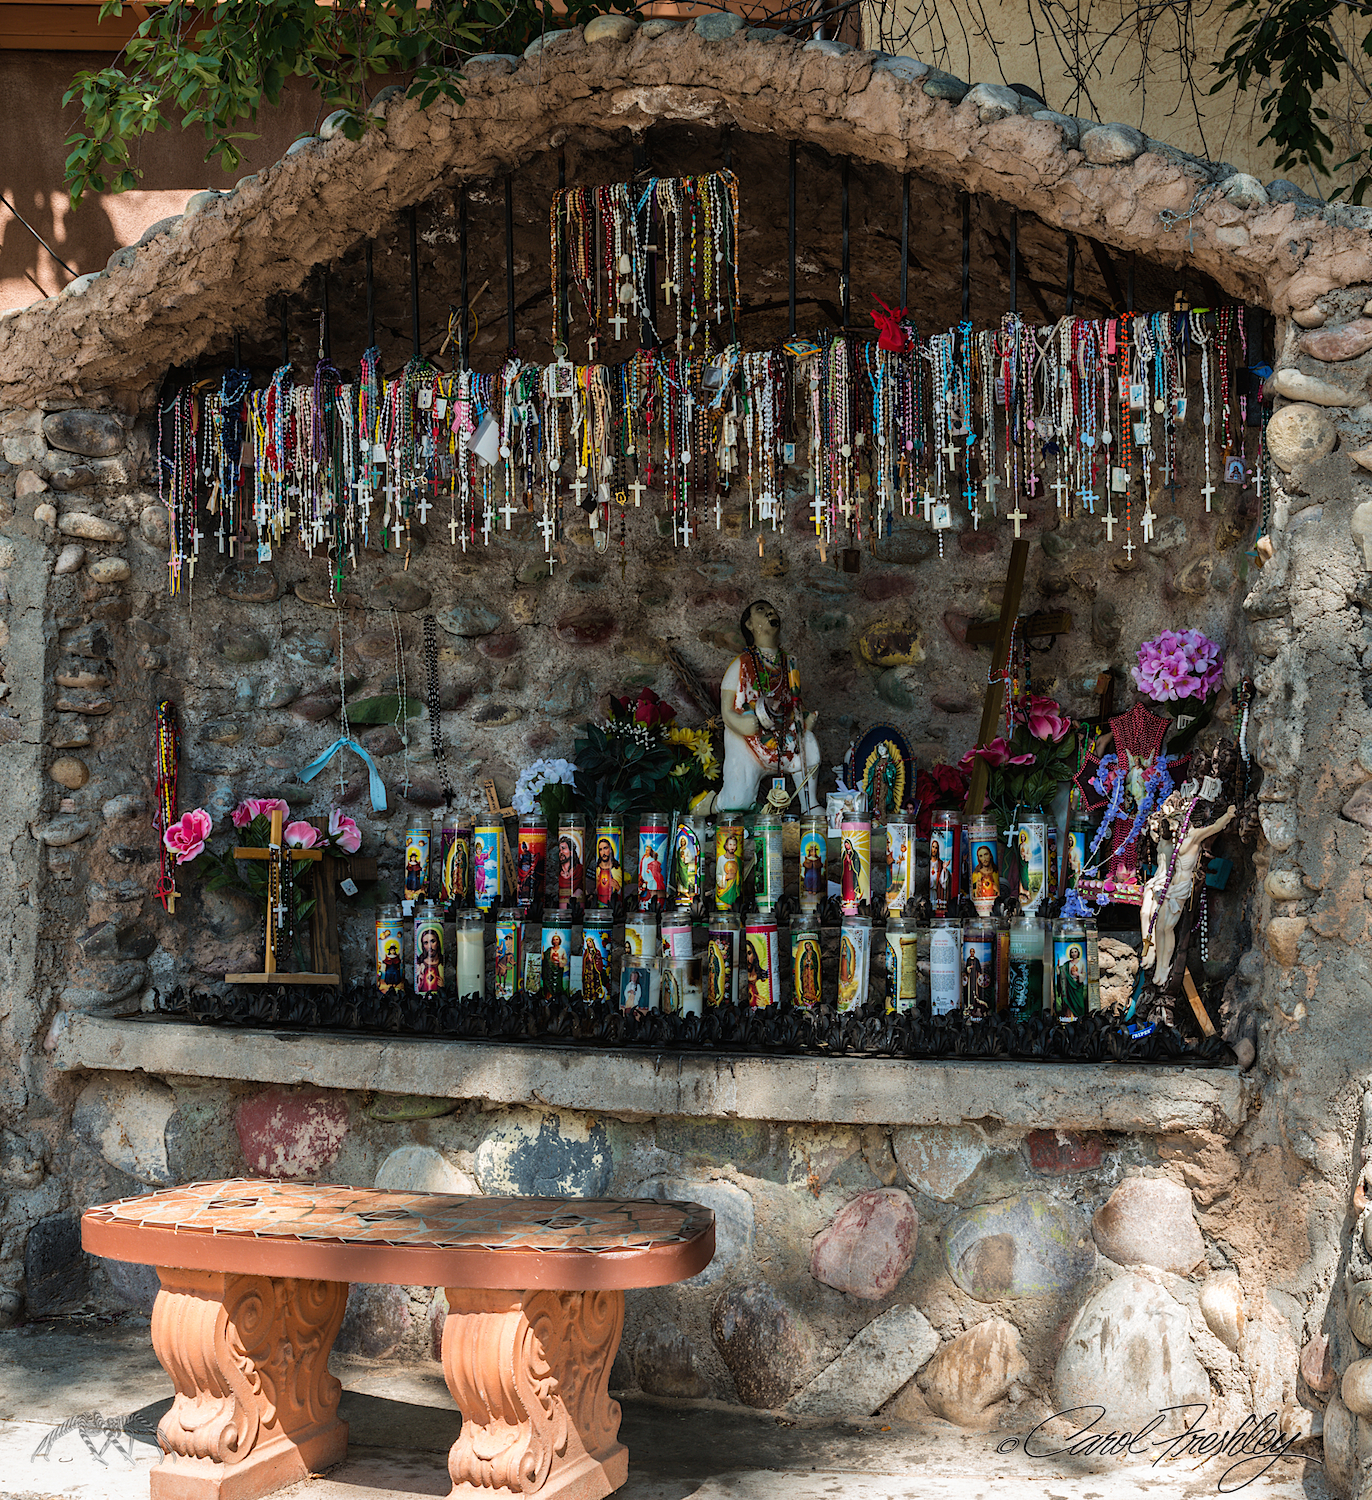 Several places such as this one are found throughout the site. The gift shop sells candles and many other religious items that can be placed in these sites.